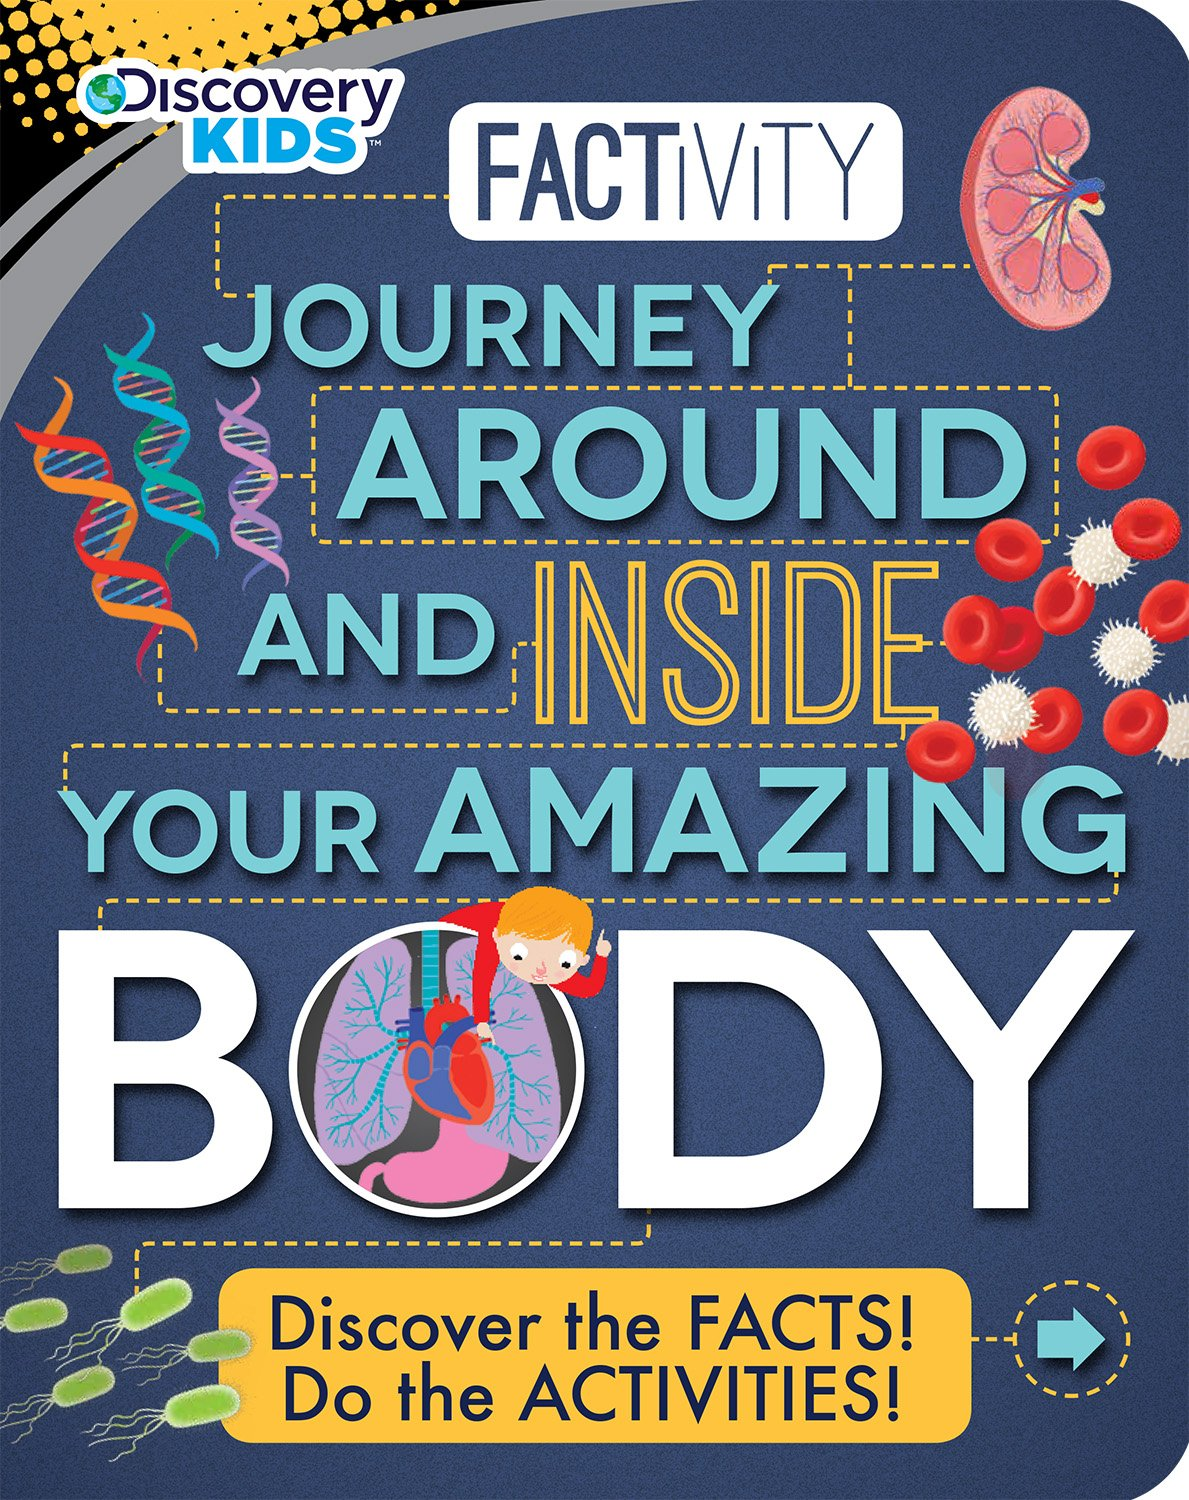 Human Body Factivity (Discovery Kids)